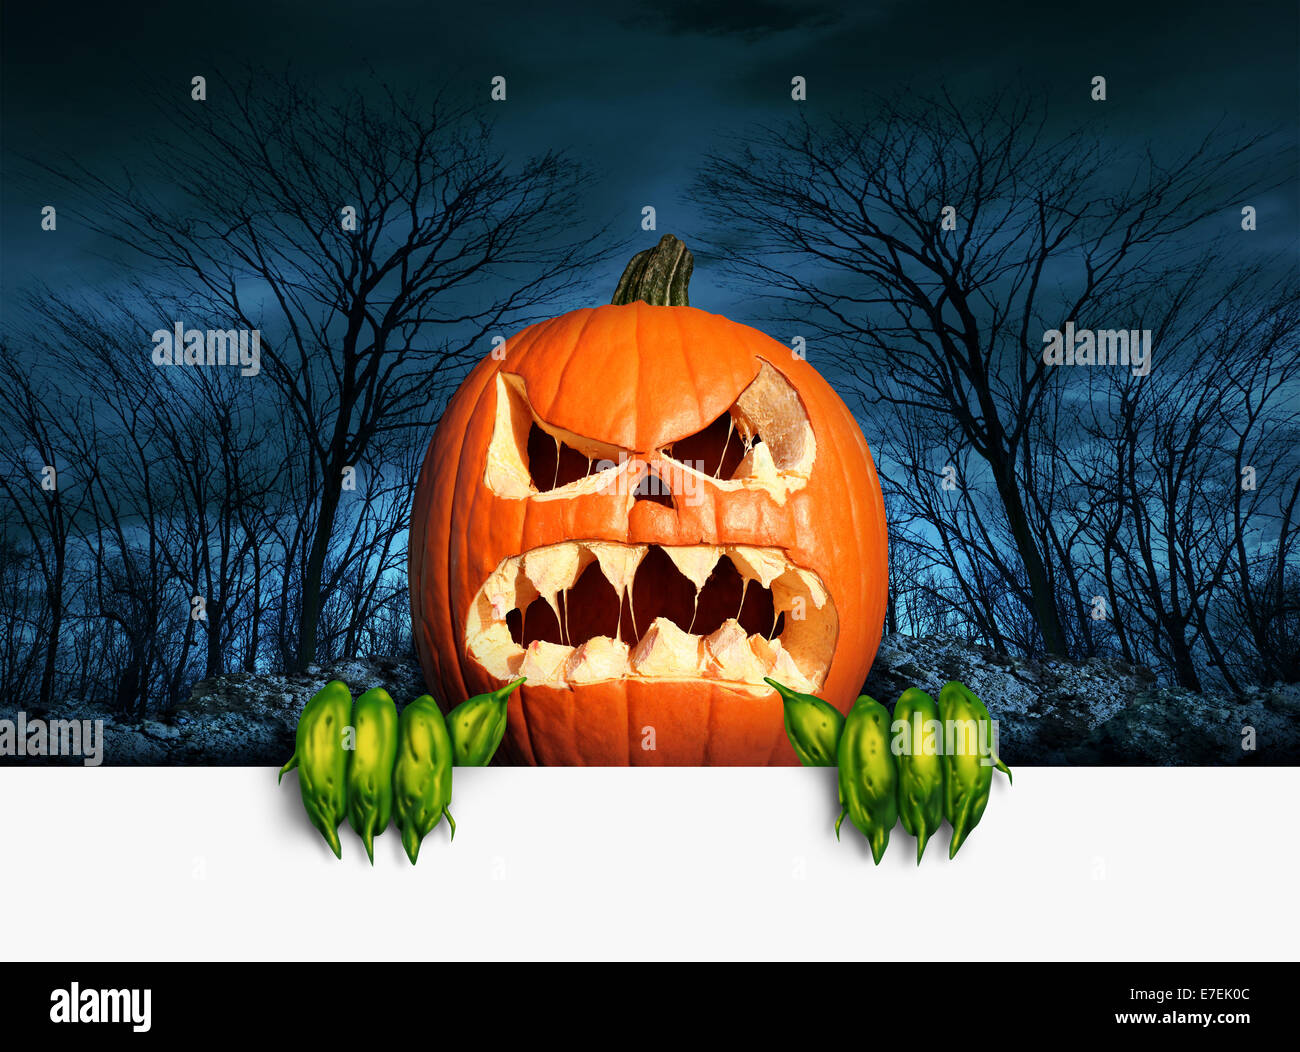 Demon pumpkin sign as an angry scary orange  jack o lantern in a haunted dark autumn forest holding a blank sign - Stock Image